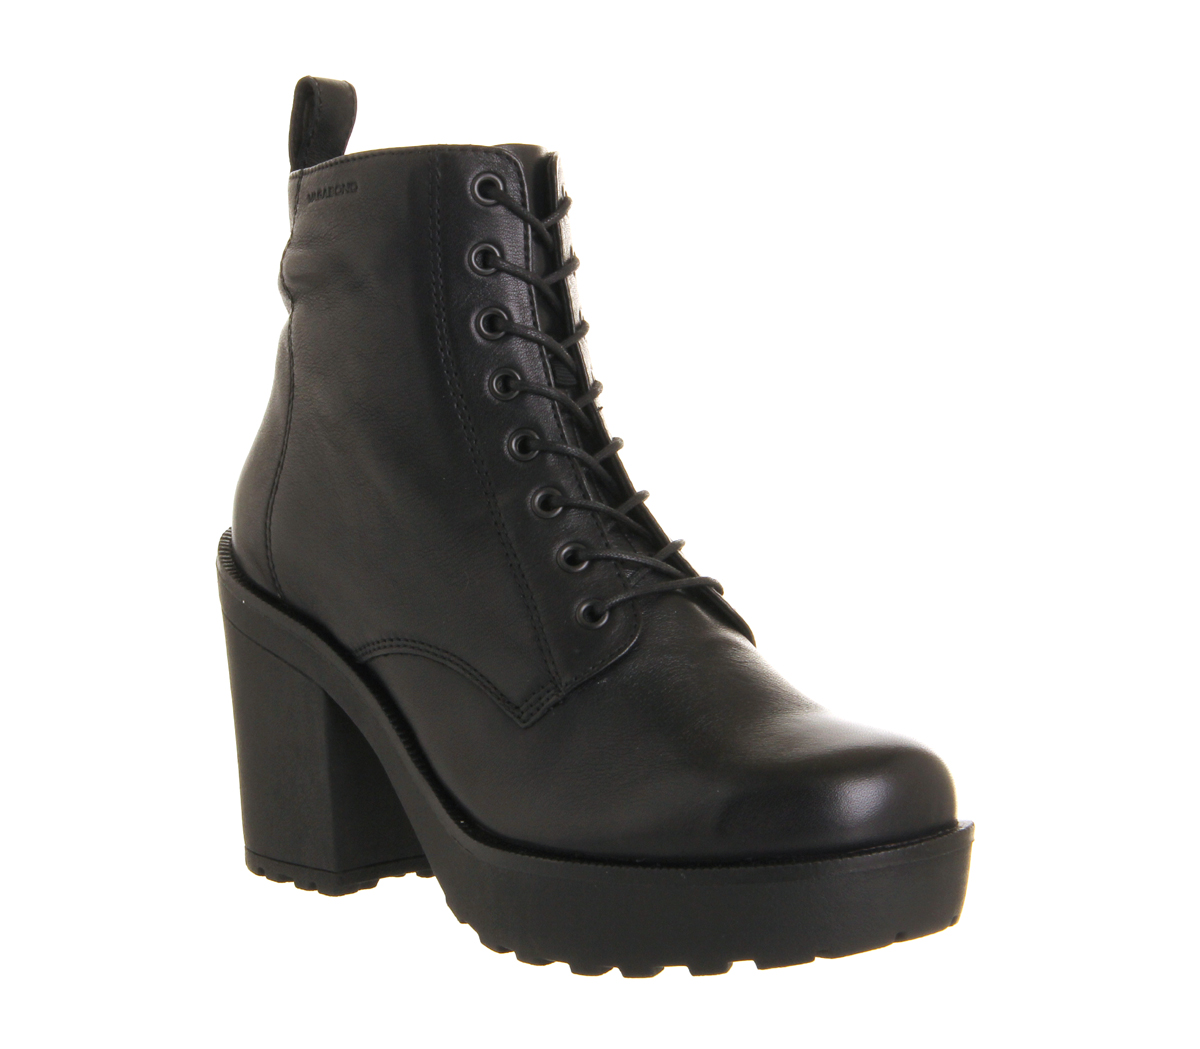 Find great deals on eBay for black boots with laces. Shop with confidence.